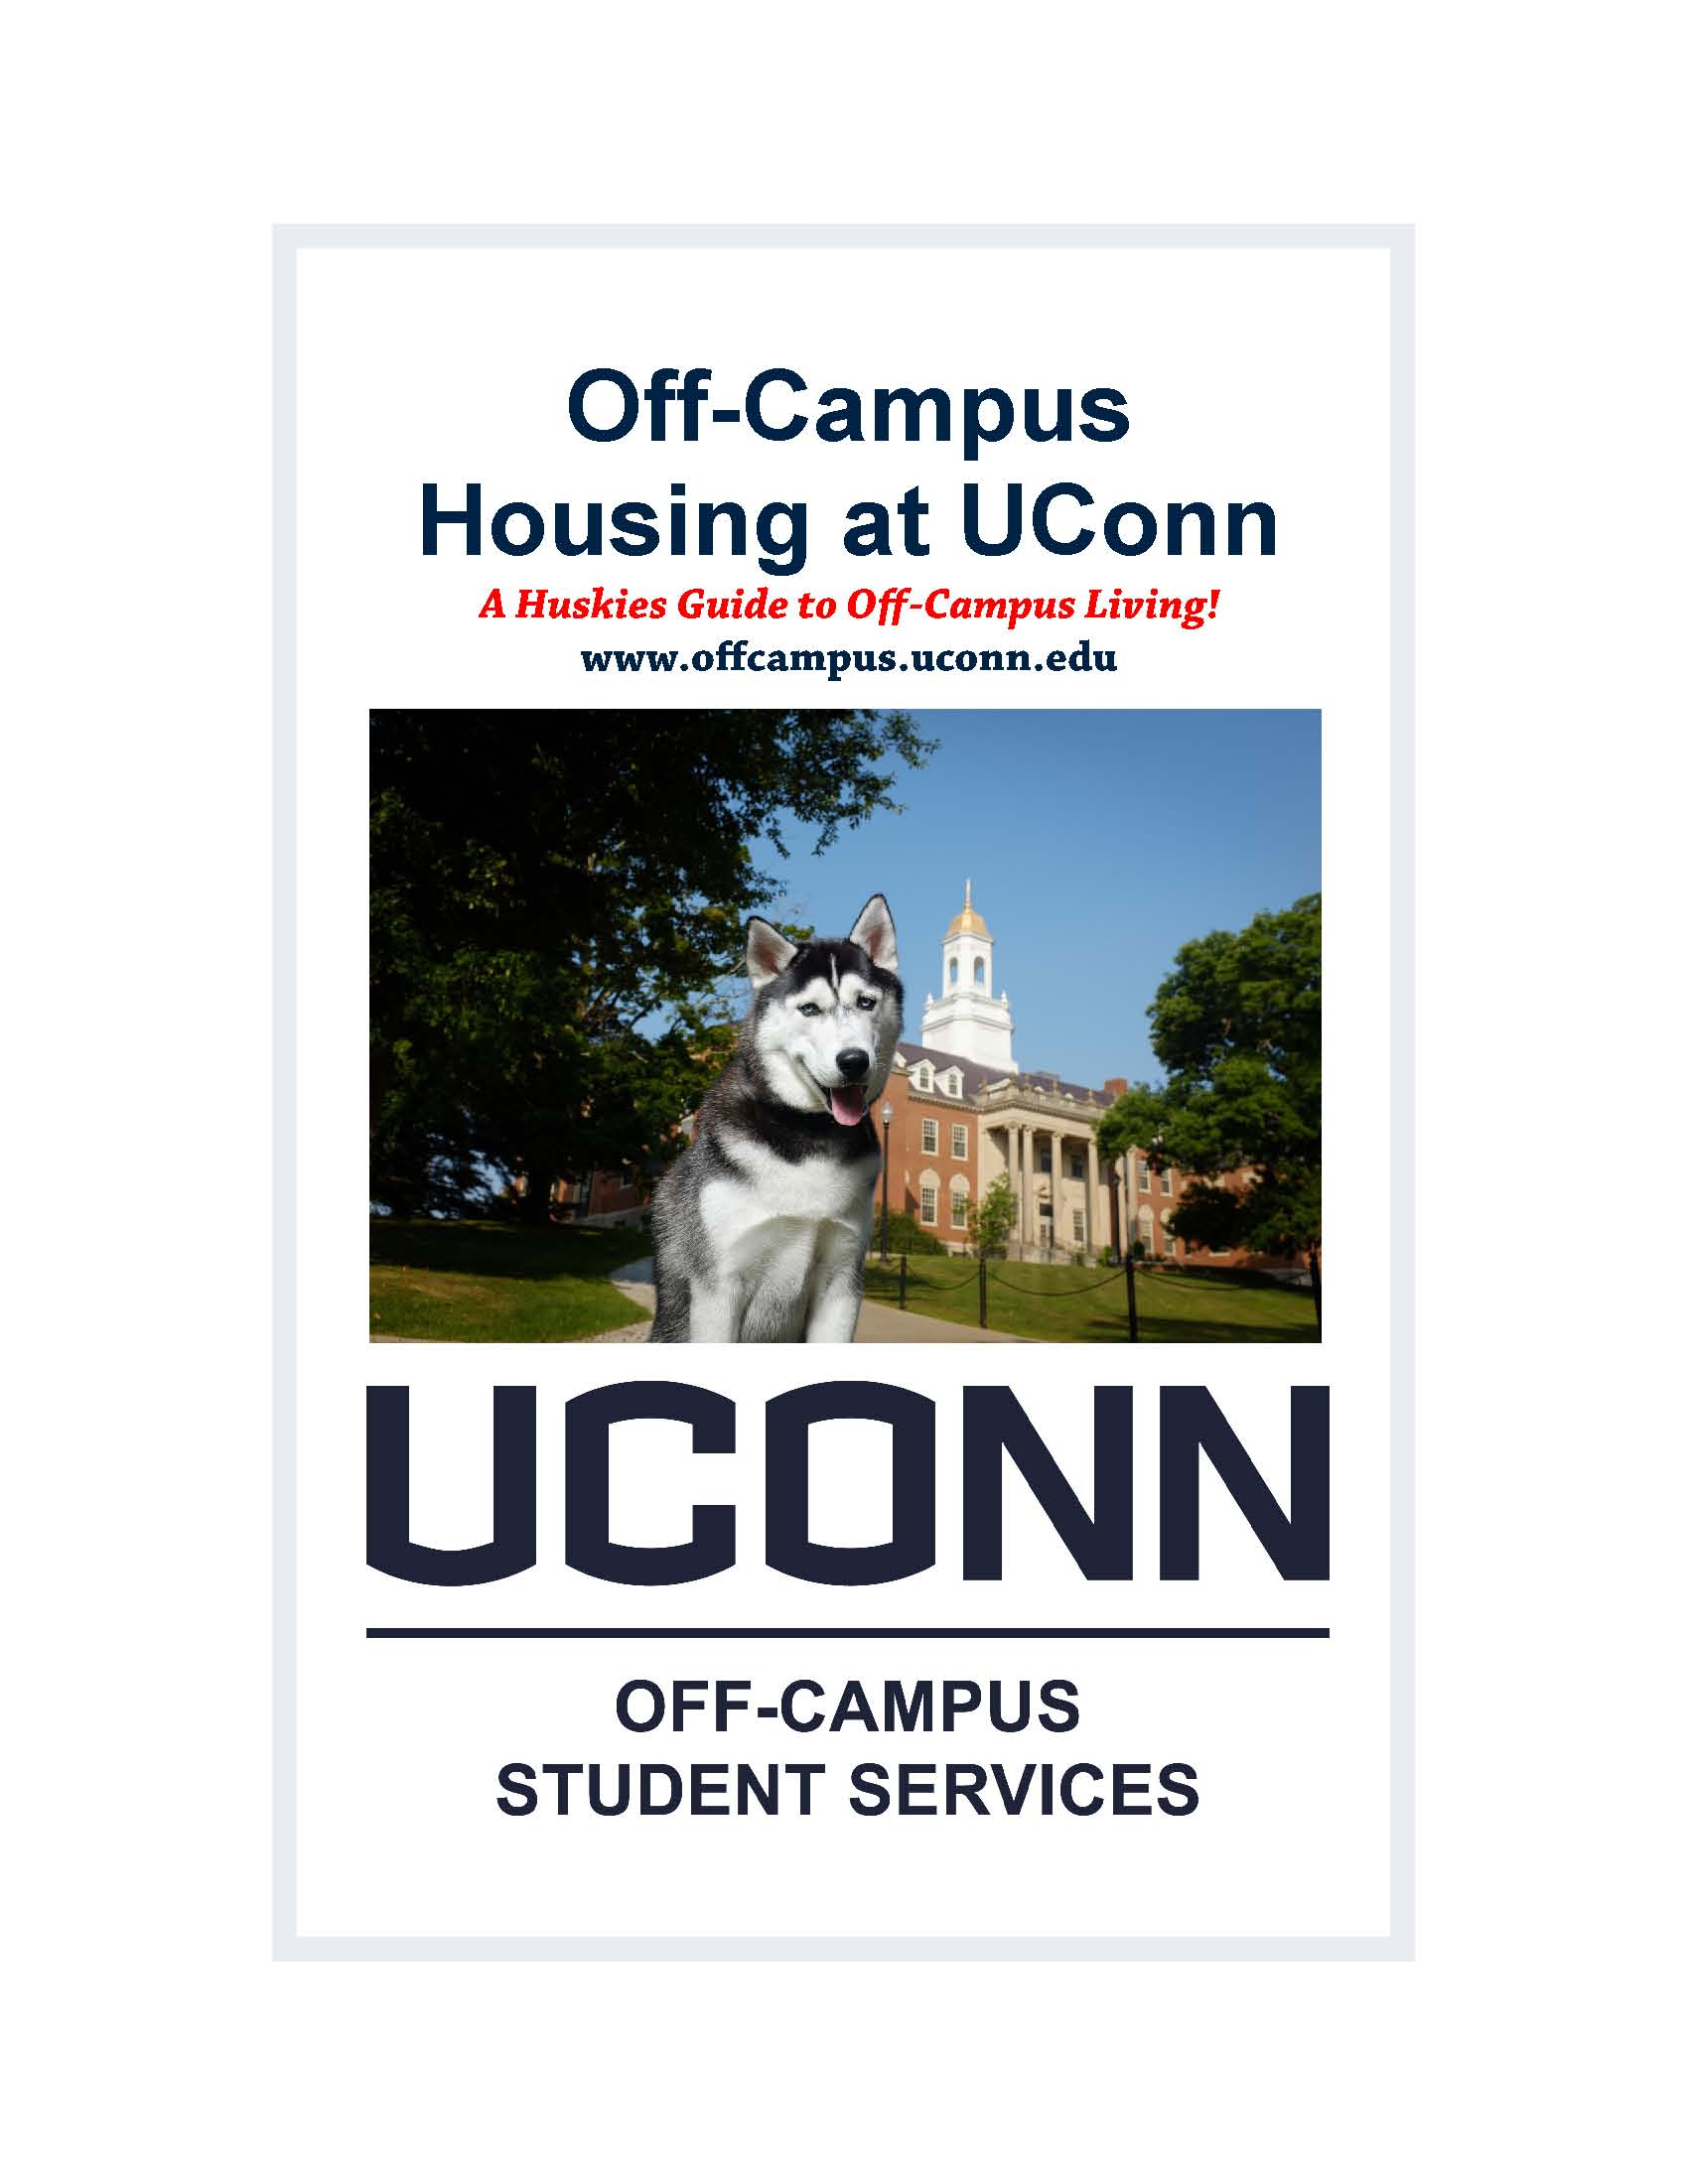 Off-Campus Housing Guide 2014-2015